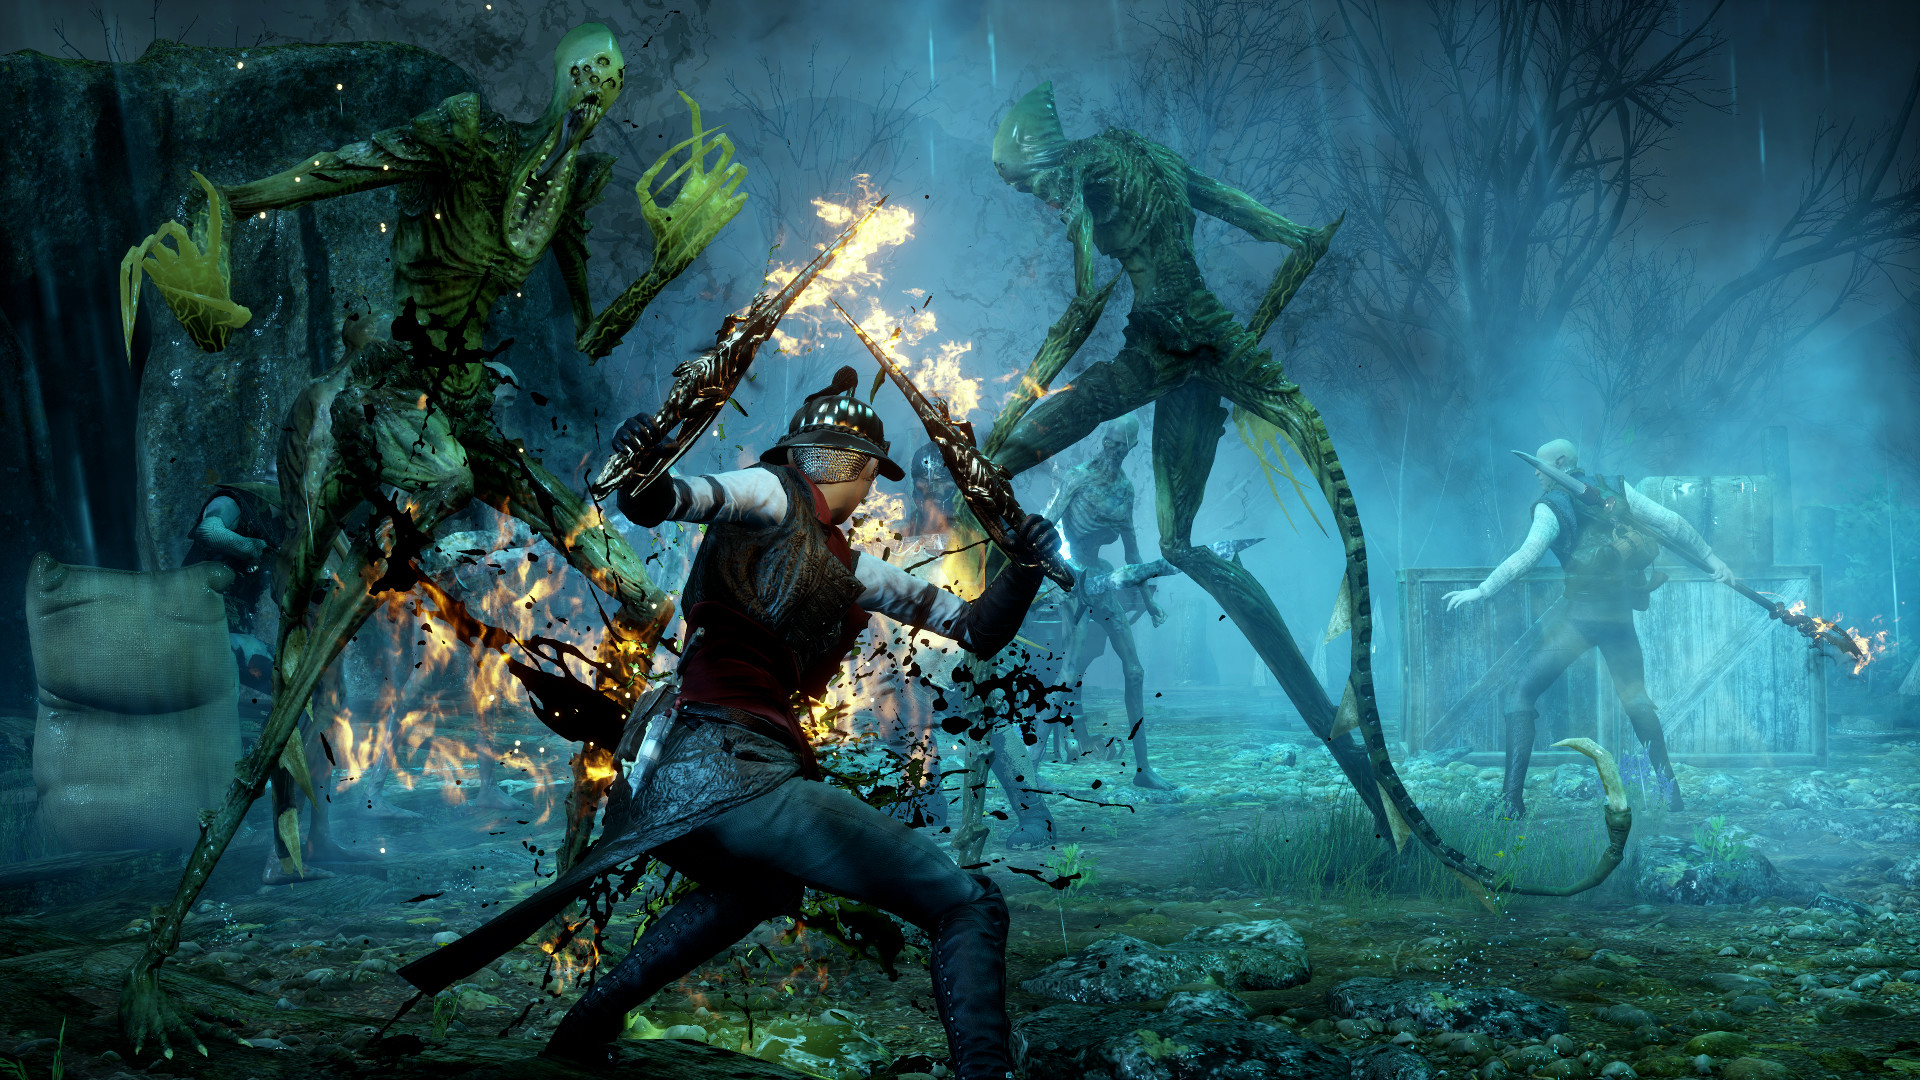 Dragon Age Voice Actor Launches Into Bizarre Twitter Tirade Against Retiring BioWare Producer